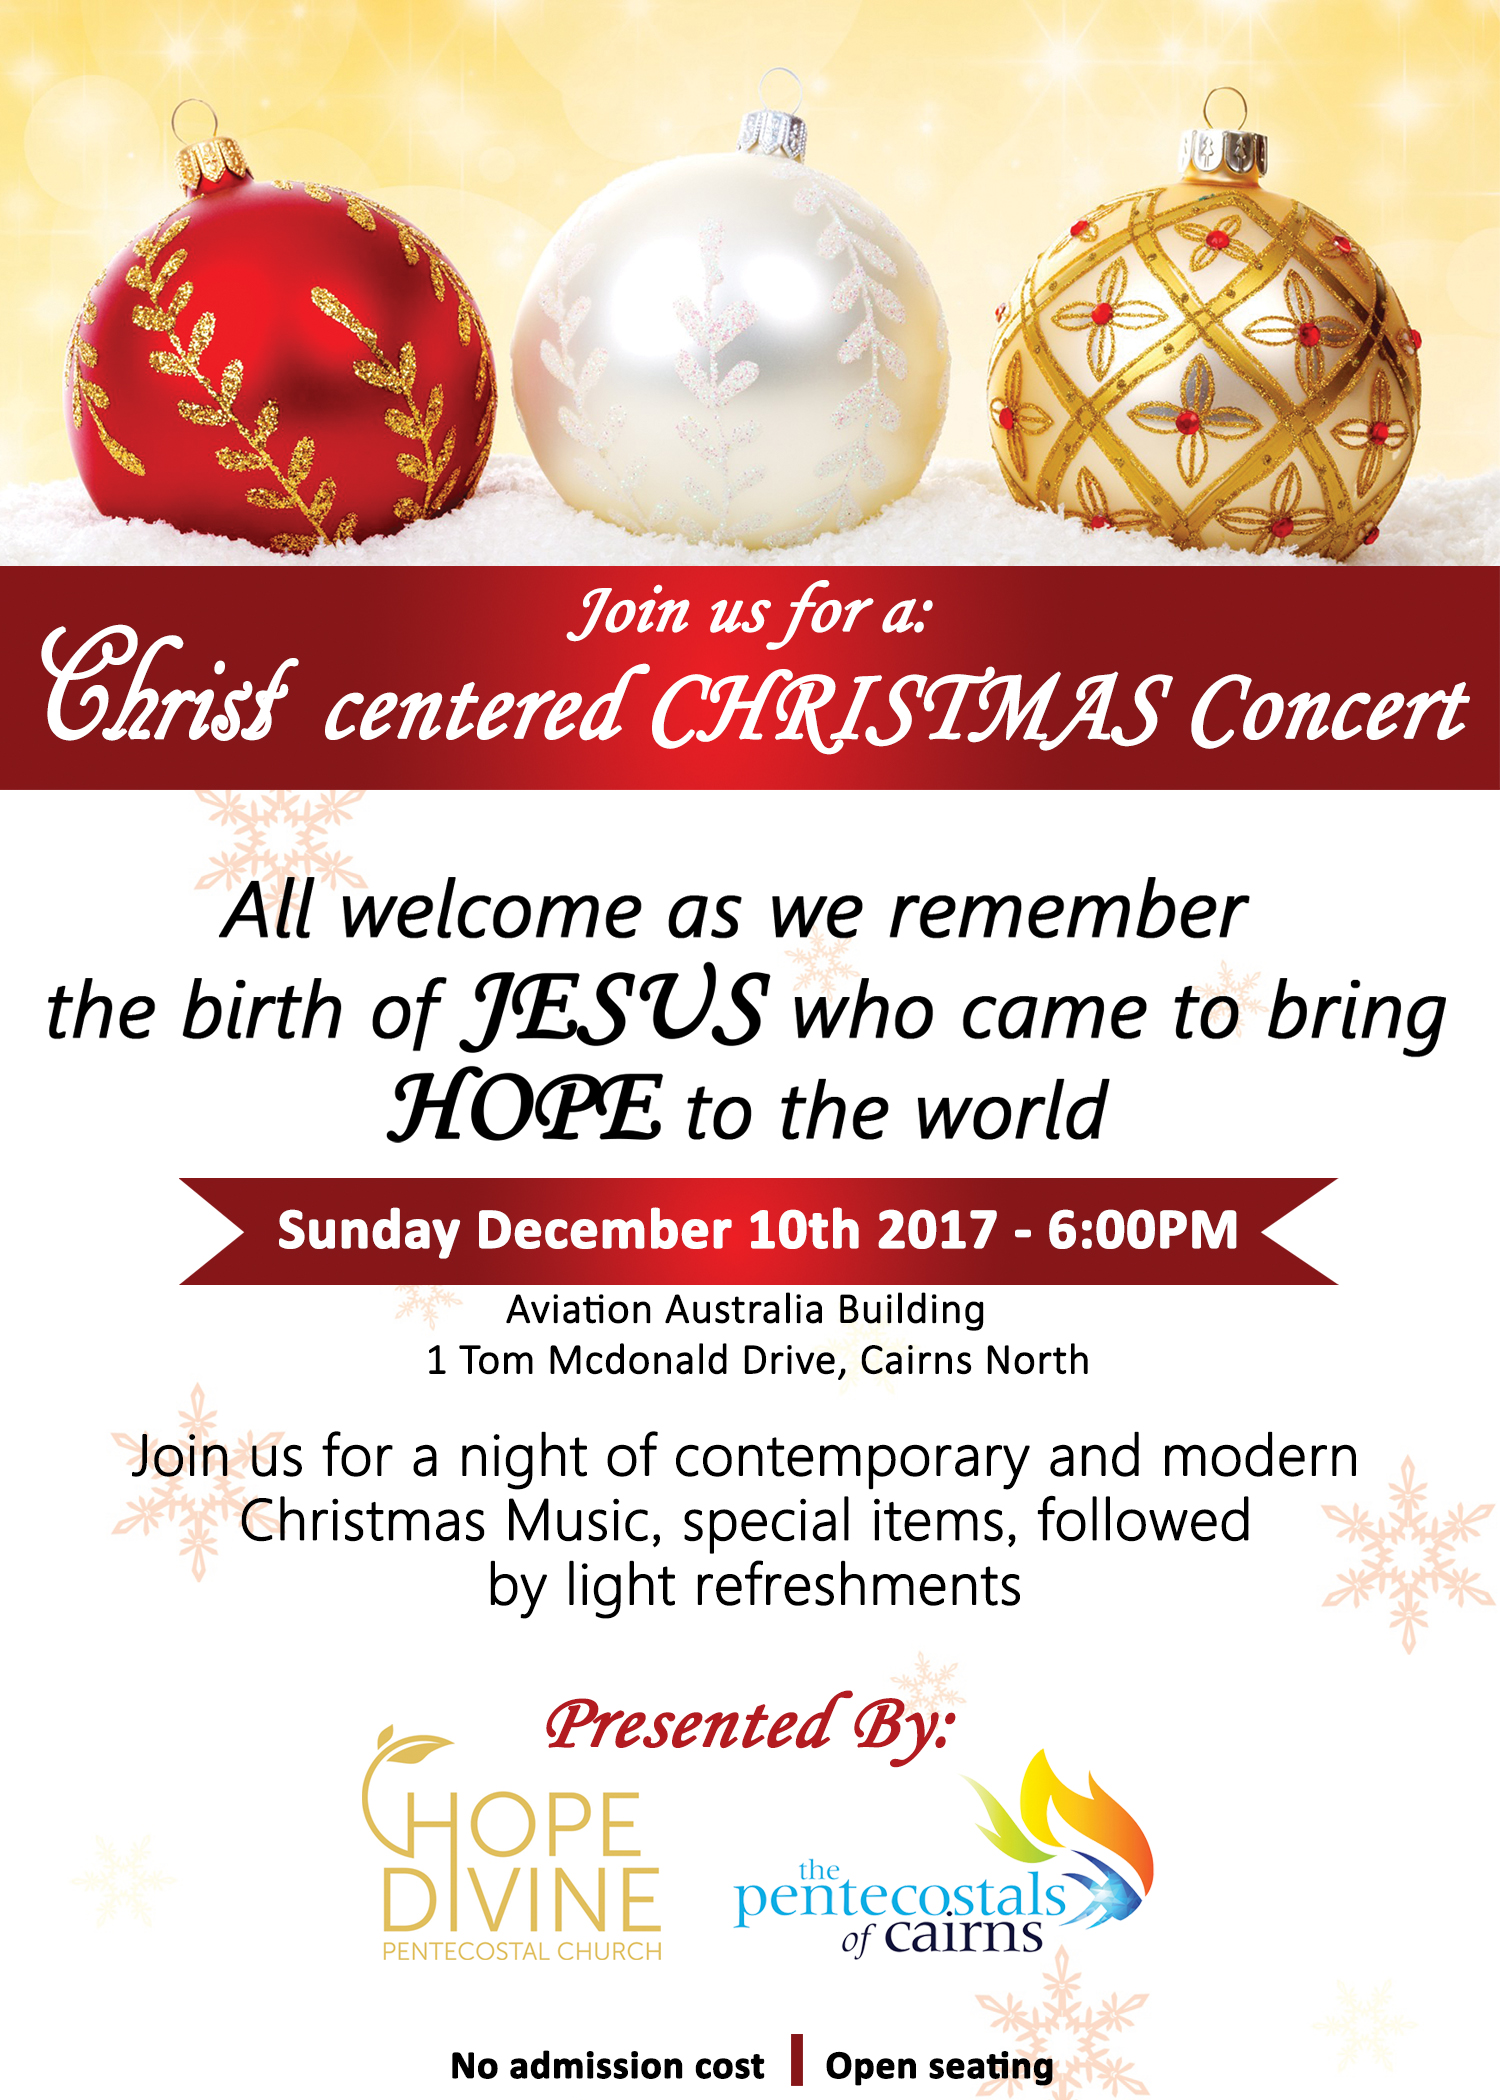 Christ centered Christmas Concert — The Pentecostals of Cairns